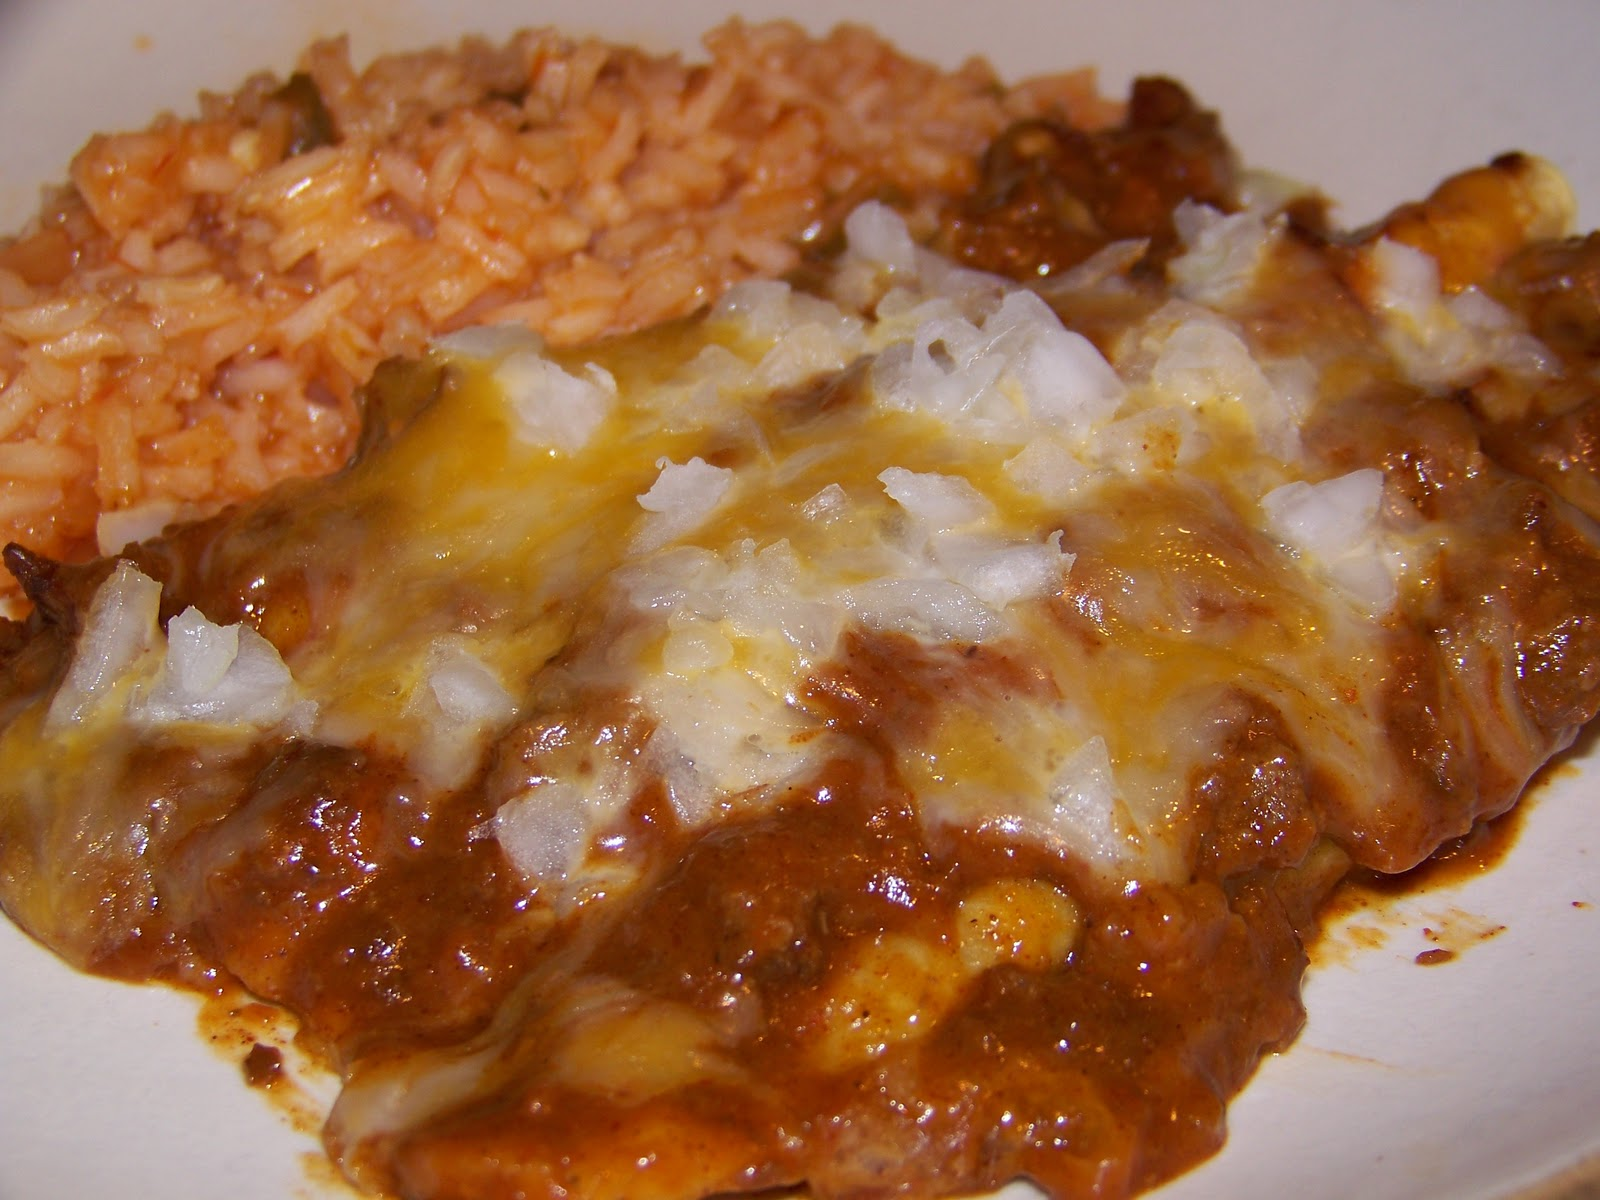 Stefanies Cooking Spot: Chili Cheese Enchiladas